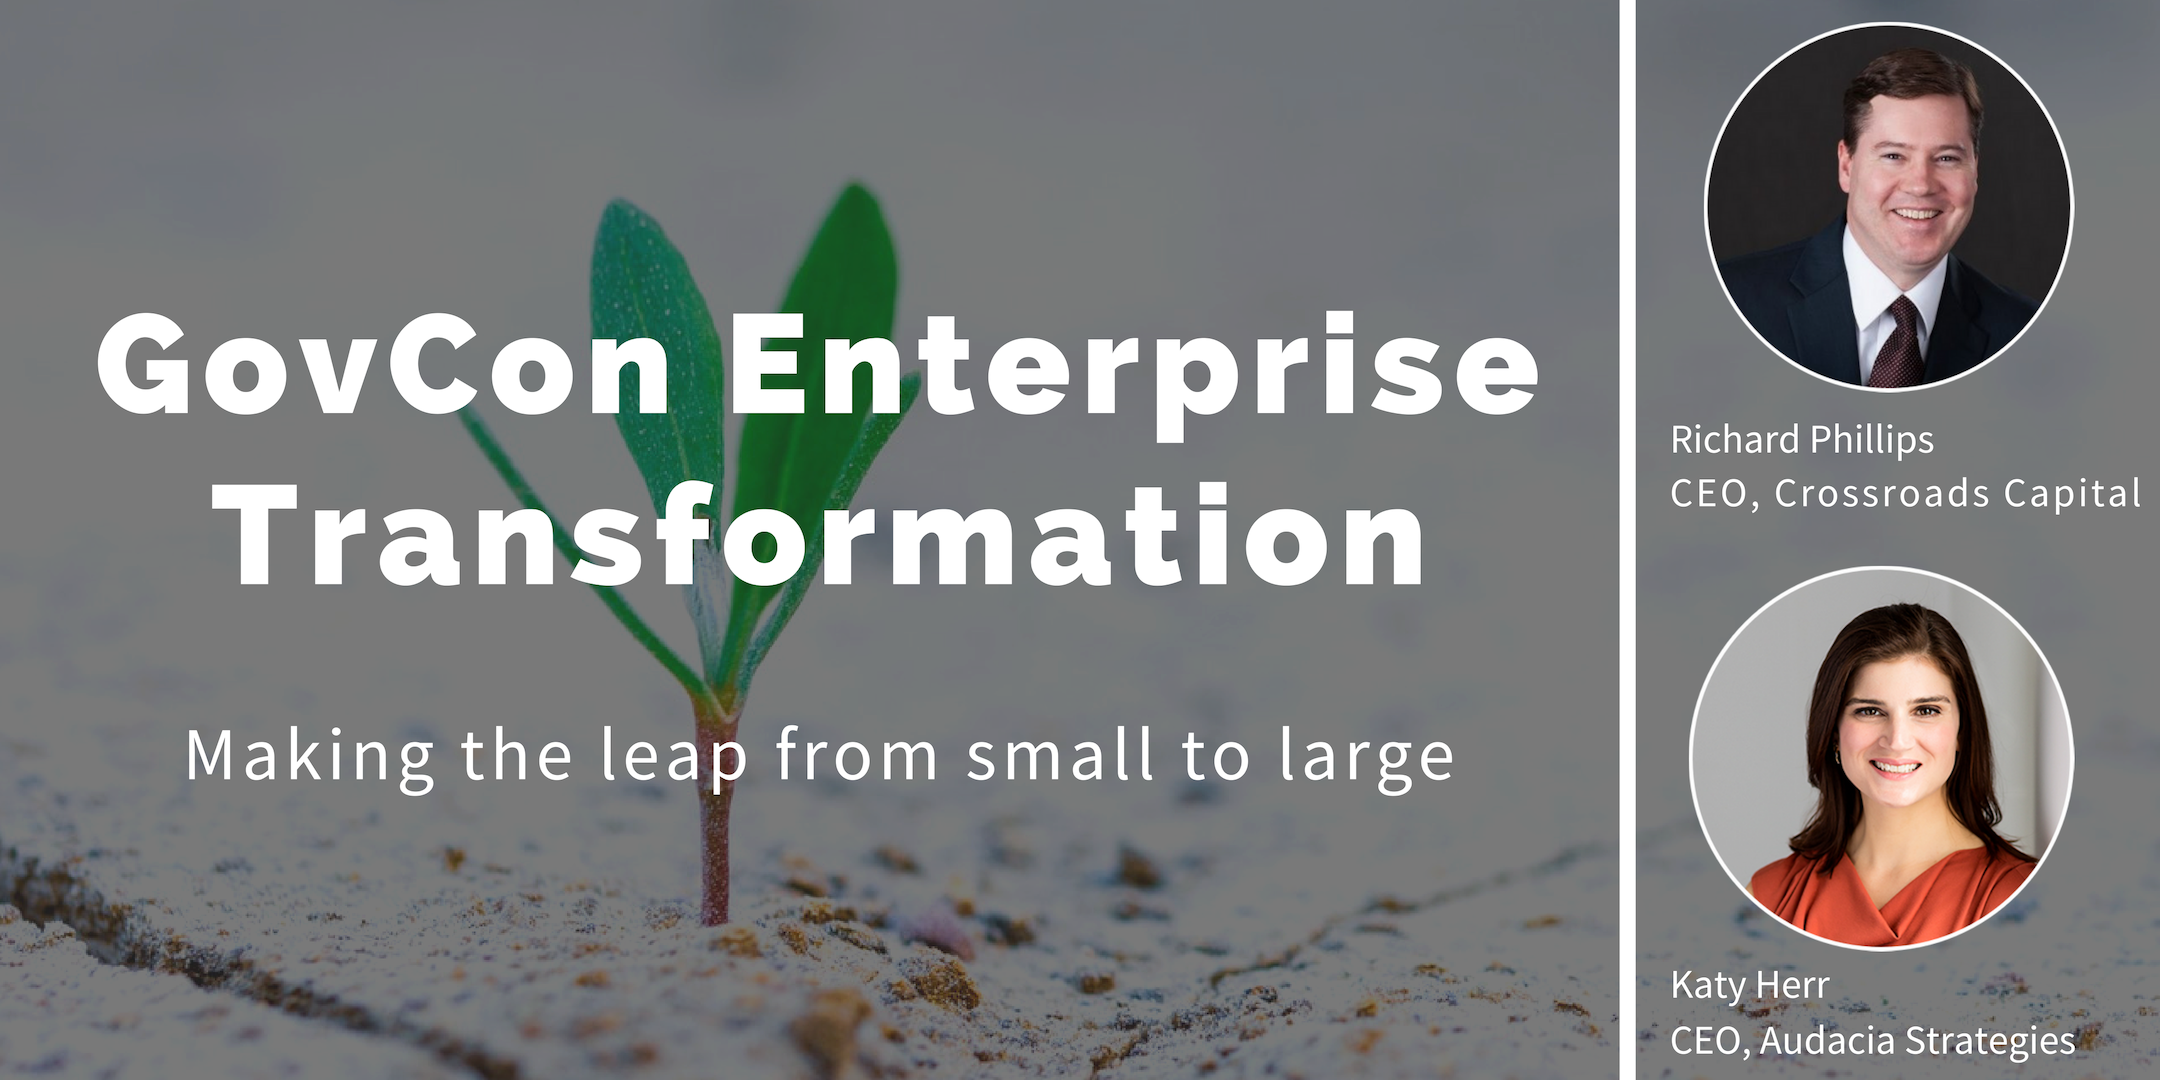 GovCon Enterprise Transformation: Making the Leap from Small to Large